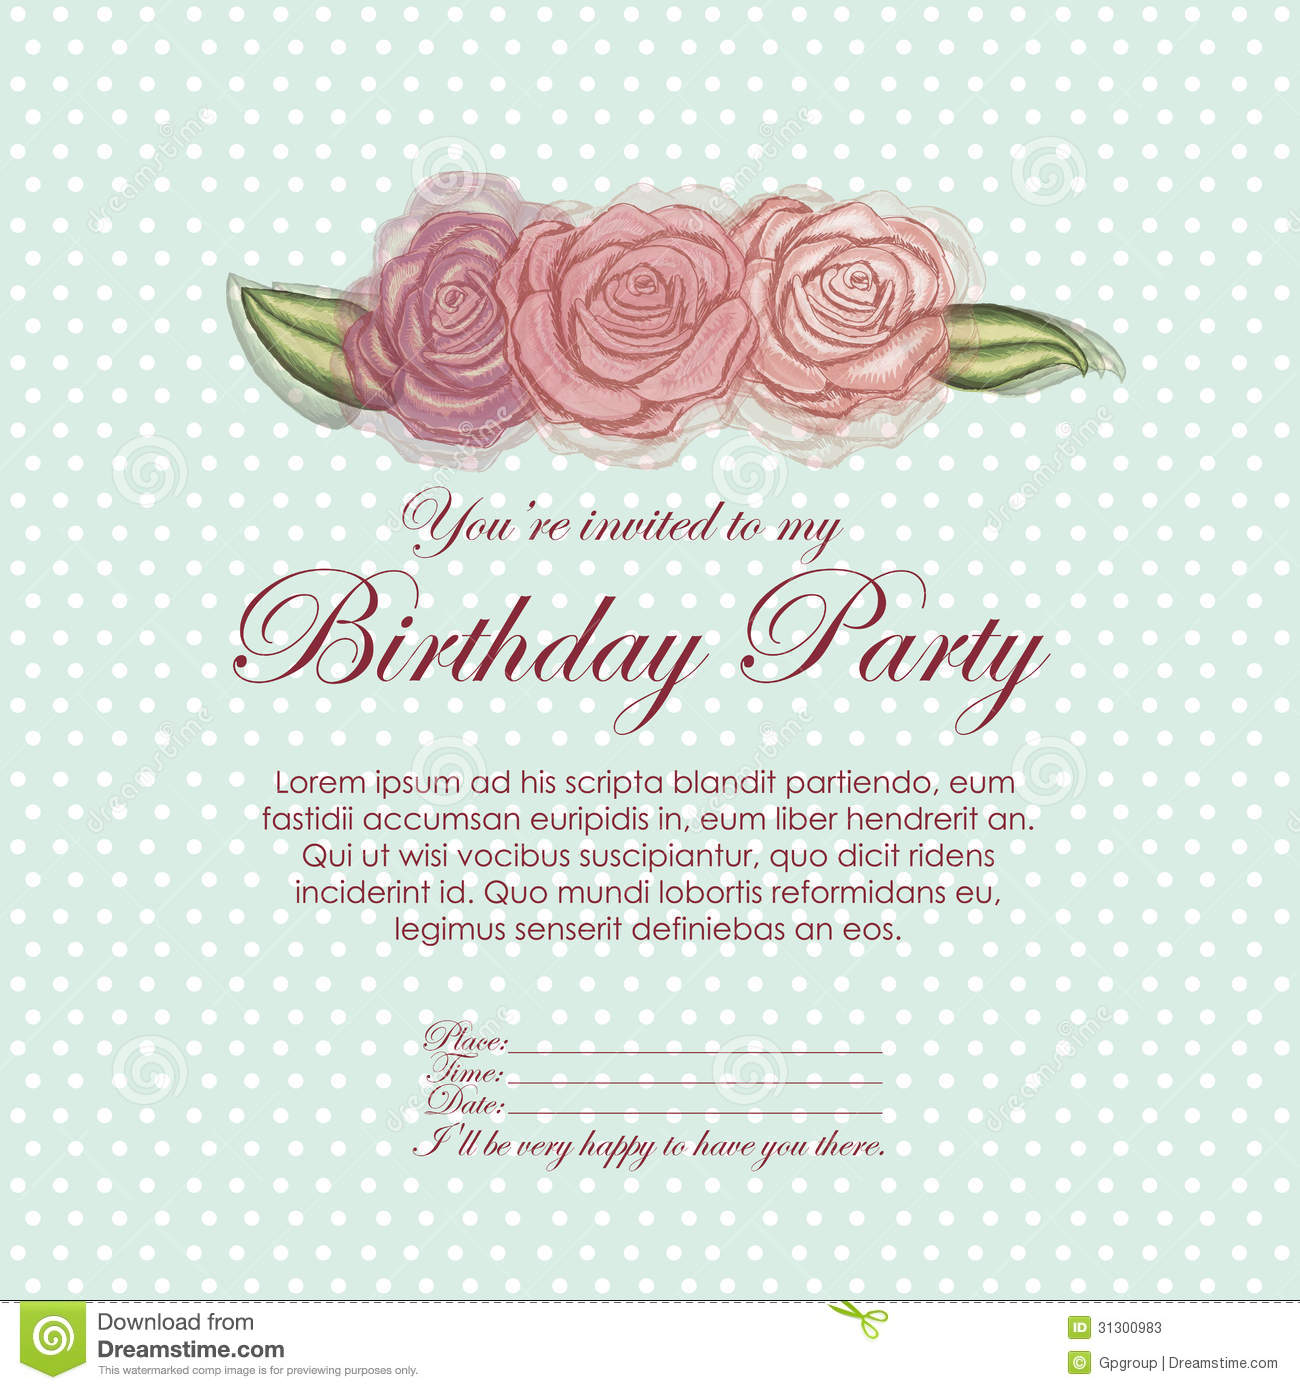 Roses invitation birthday stock vector. Image of happy ...